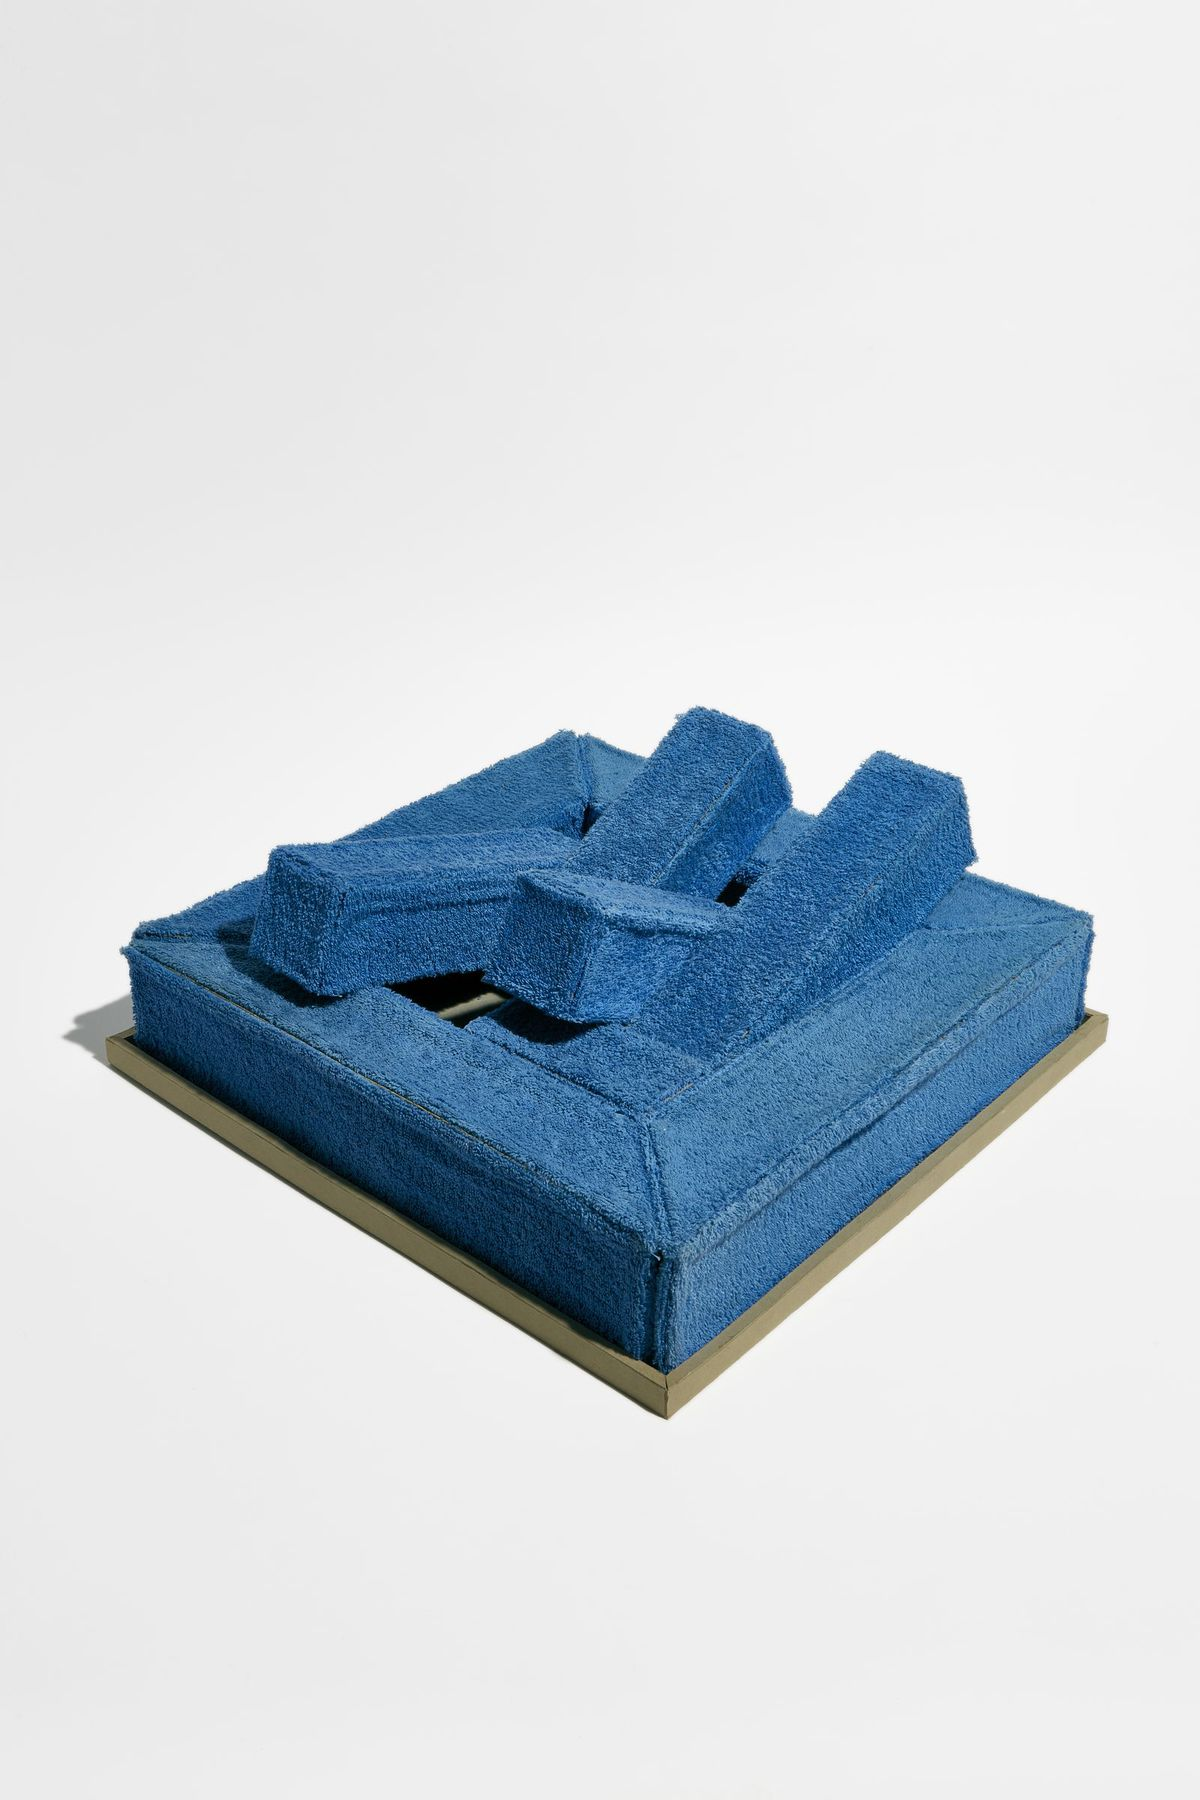 A square blue sofa with large blue cushions.